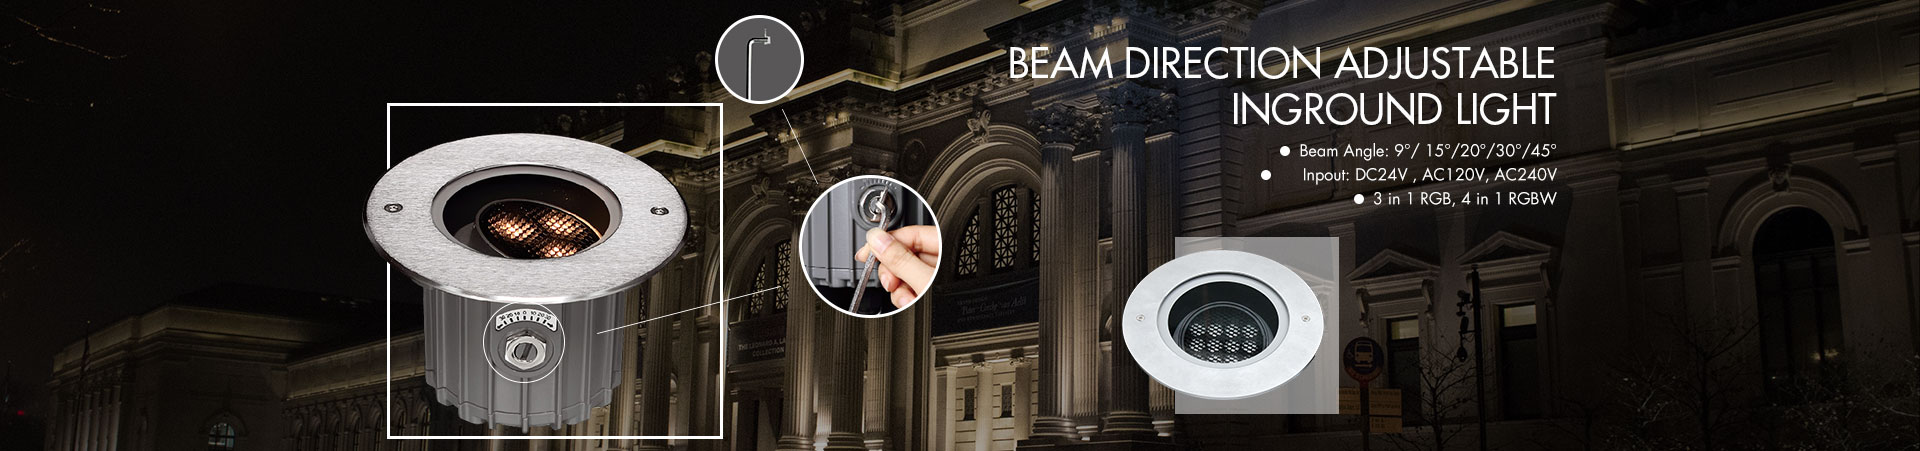 Beam Direction Adjustable Inground Light